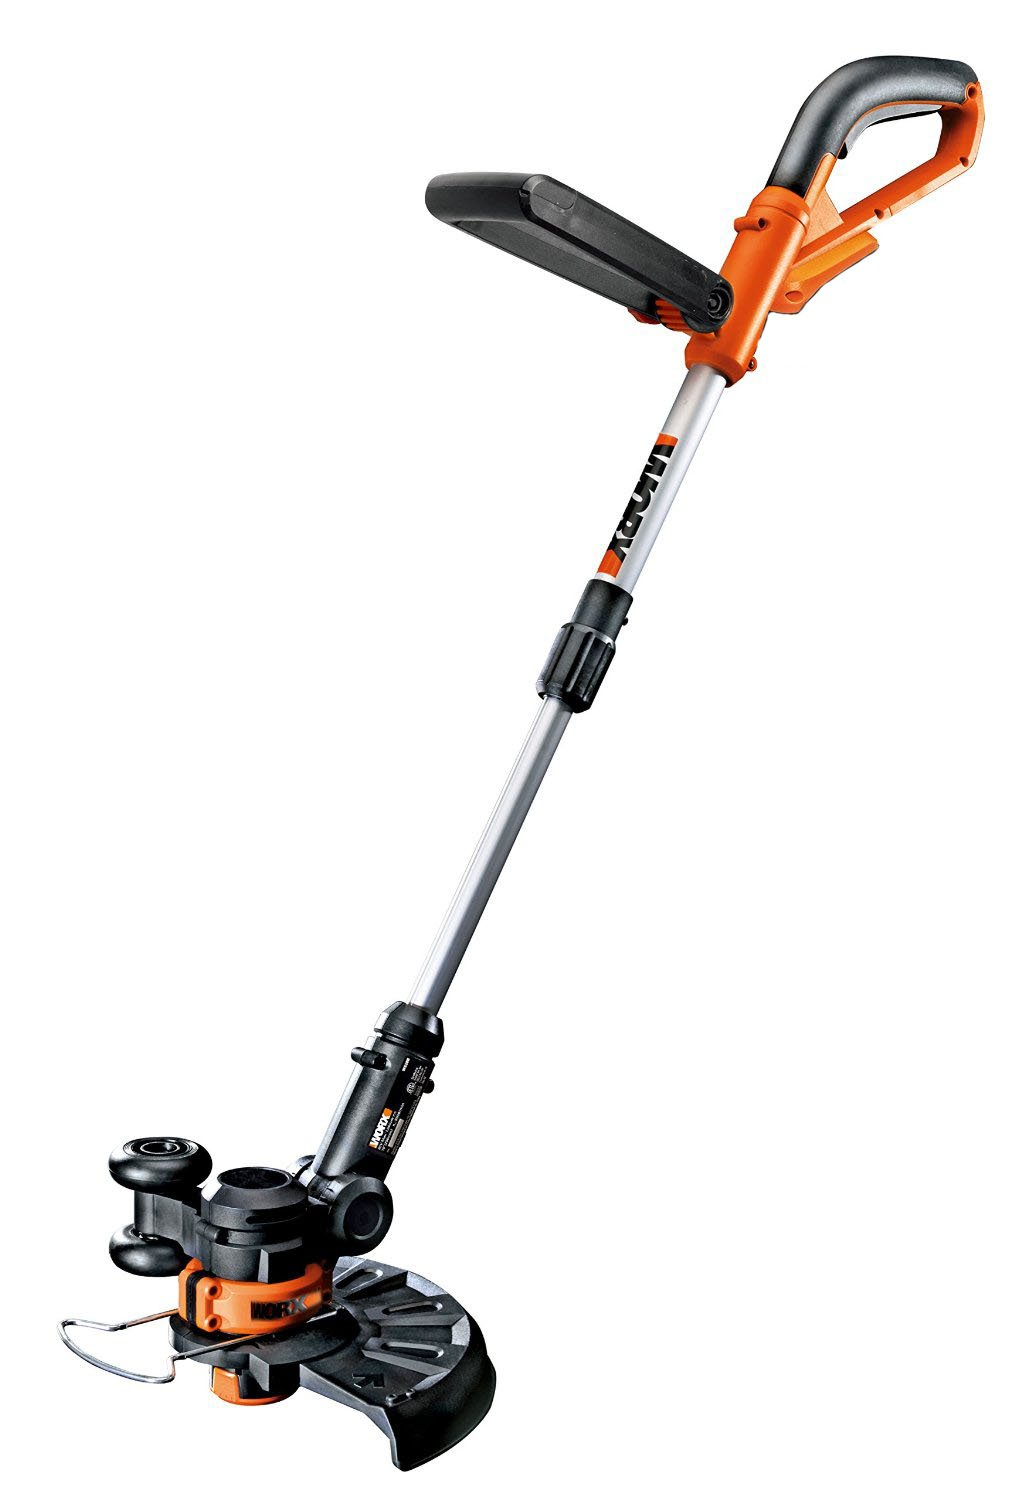 WORX WG156 Li-Ion Cordless Grass Trimmer/Edger with Manual Handle, 10-Inch,(Bare Tool Only)